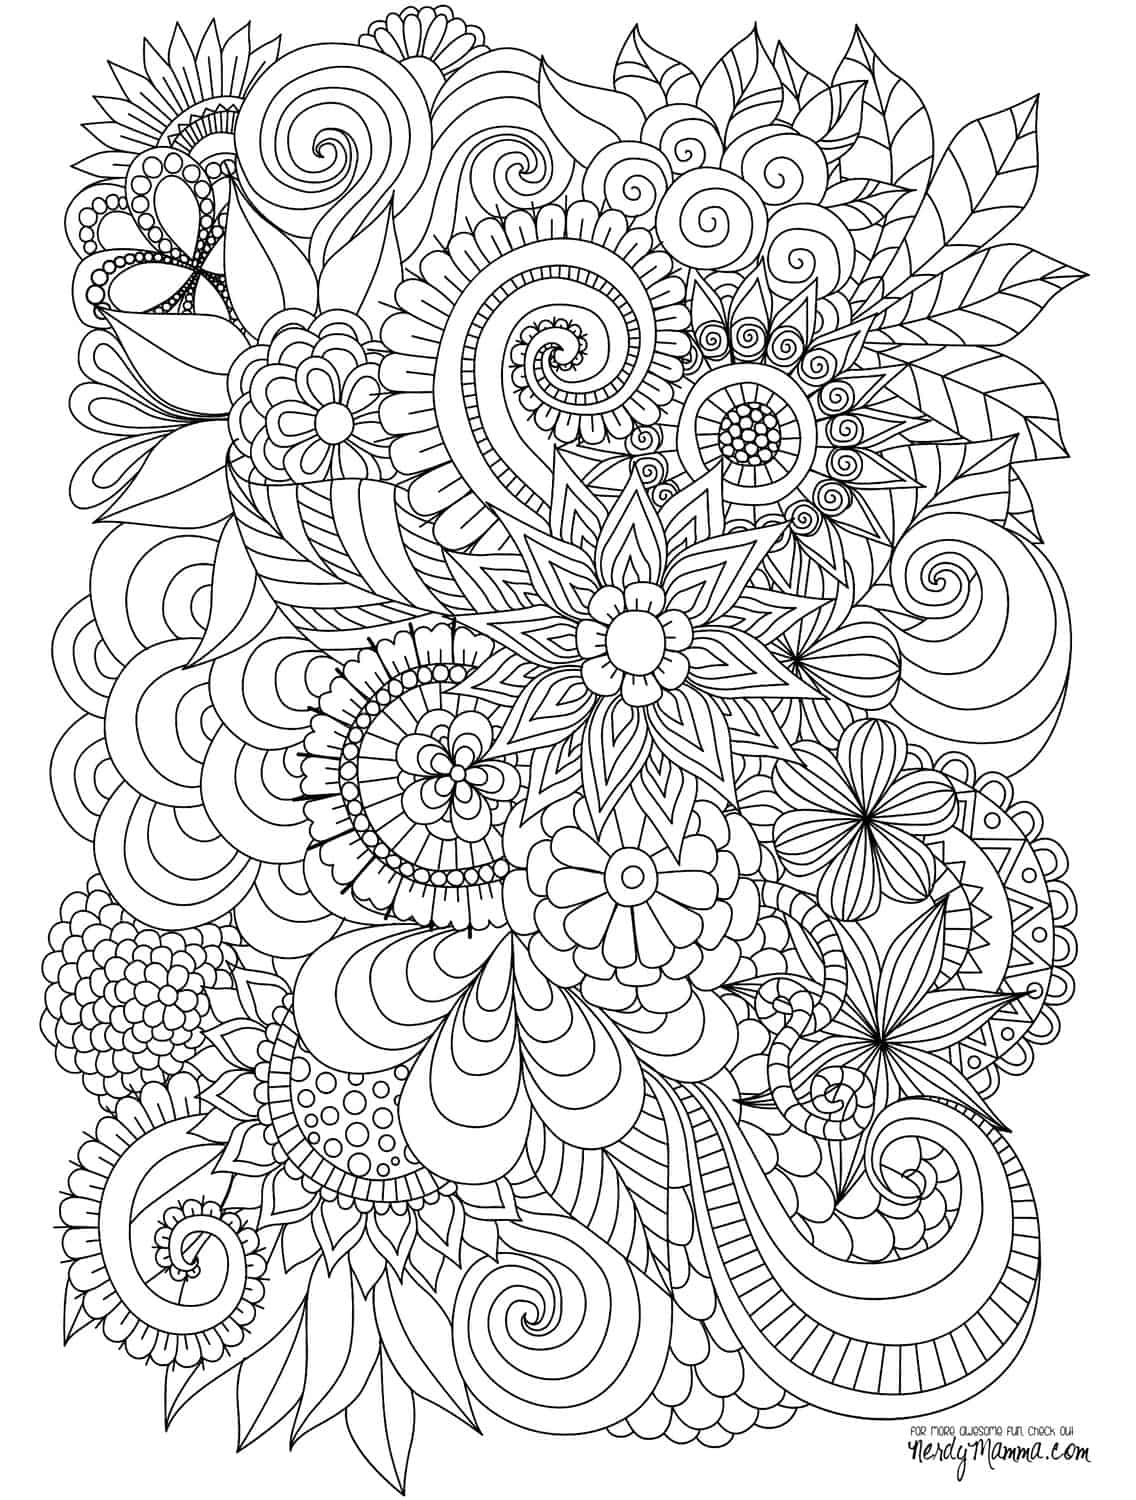 11 Free Printable Adult Coloring Pages Free Printable Coloring Pages For Adults